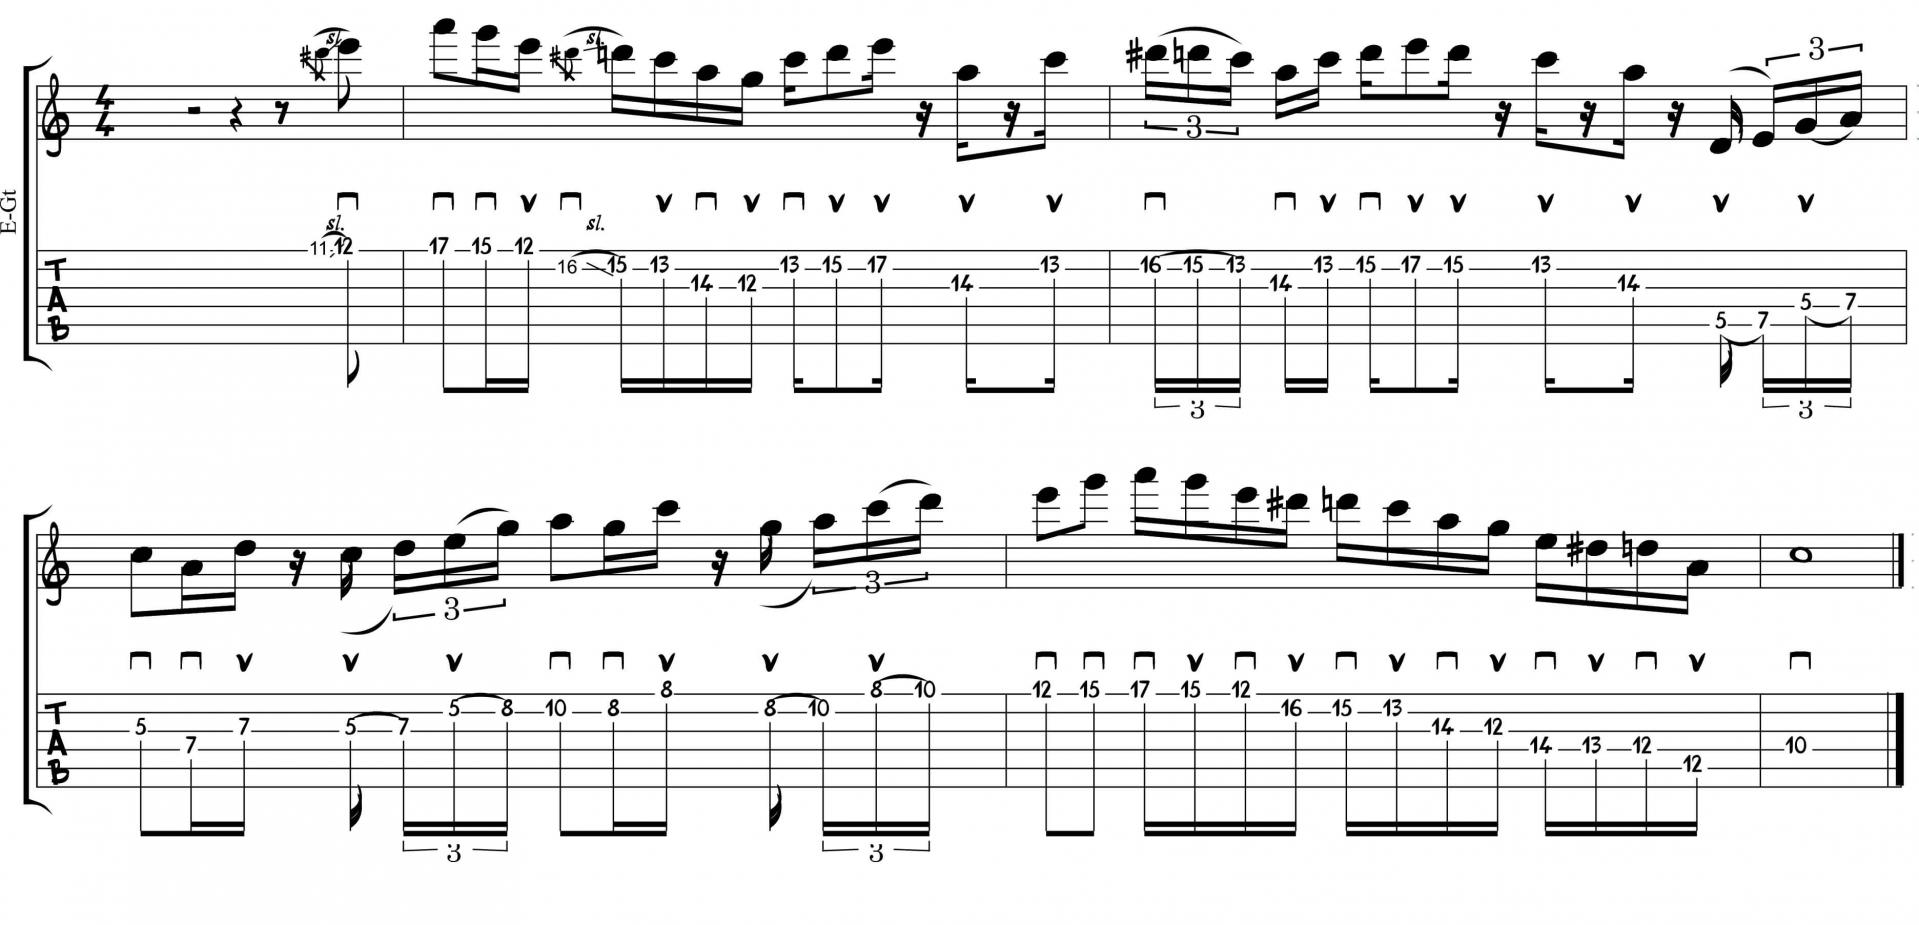 Lick metheny 1